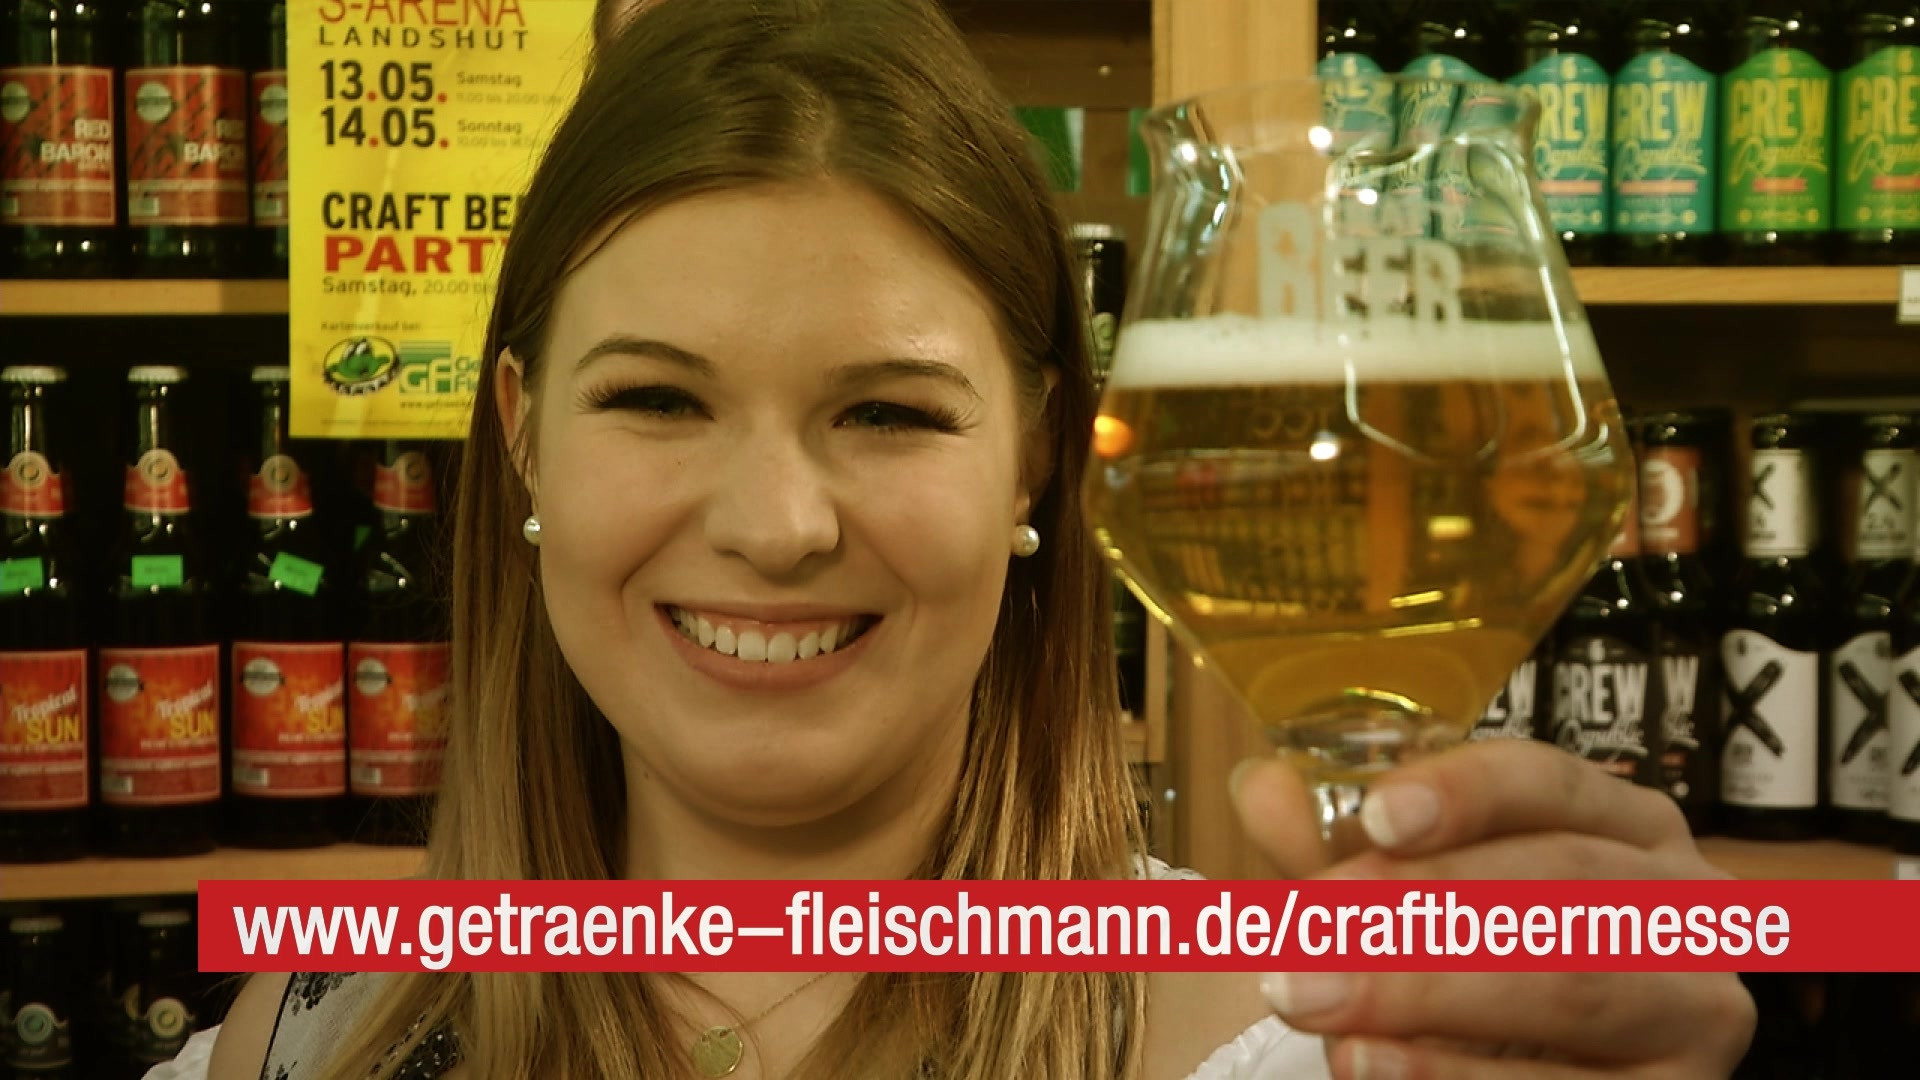 Craft Beer Messe, Landshut | Isar TV